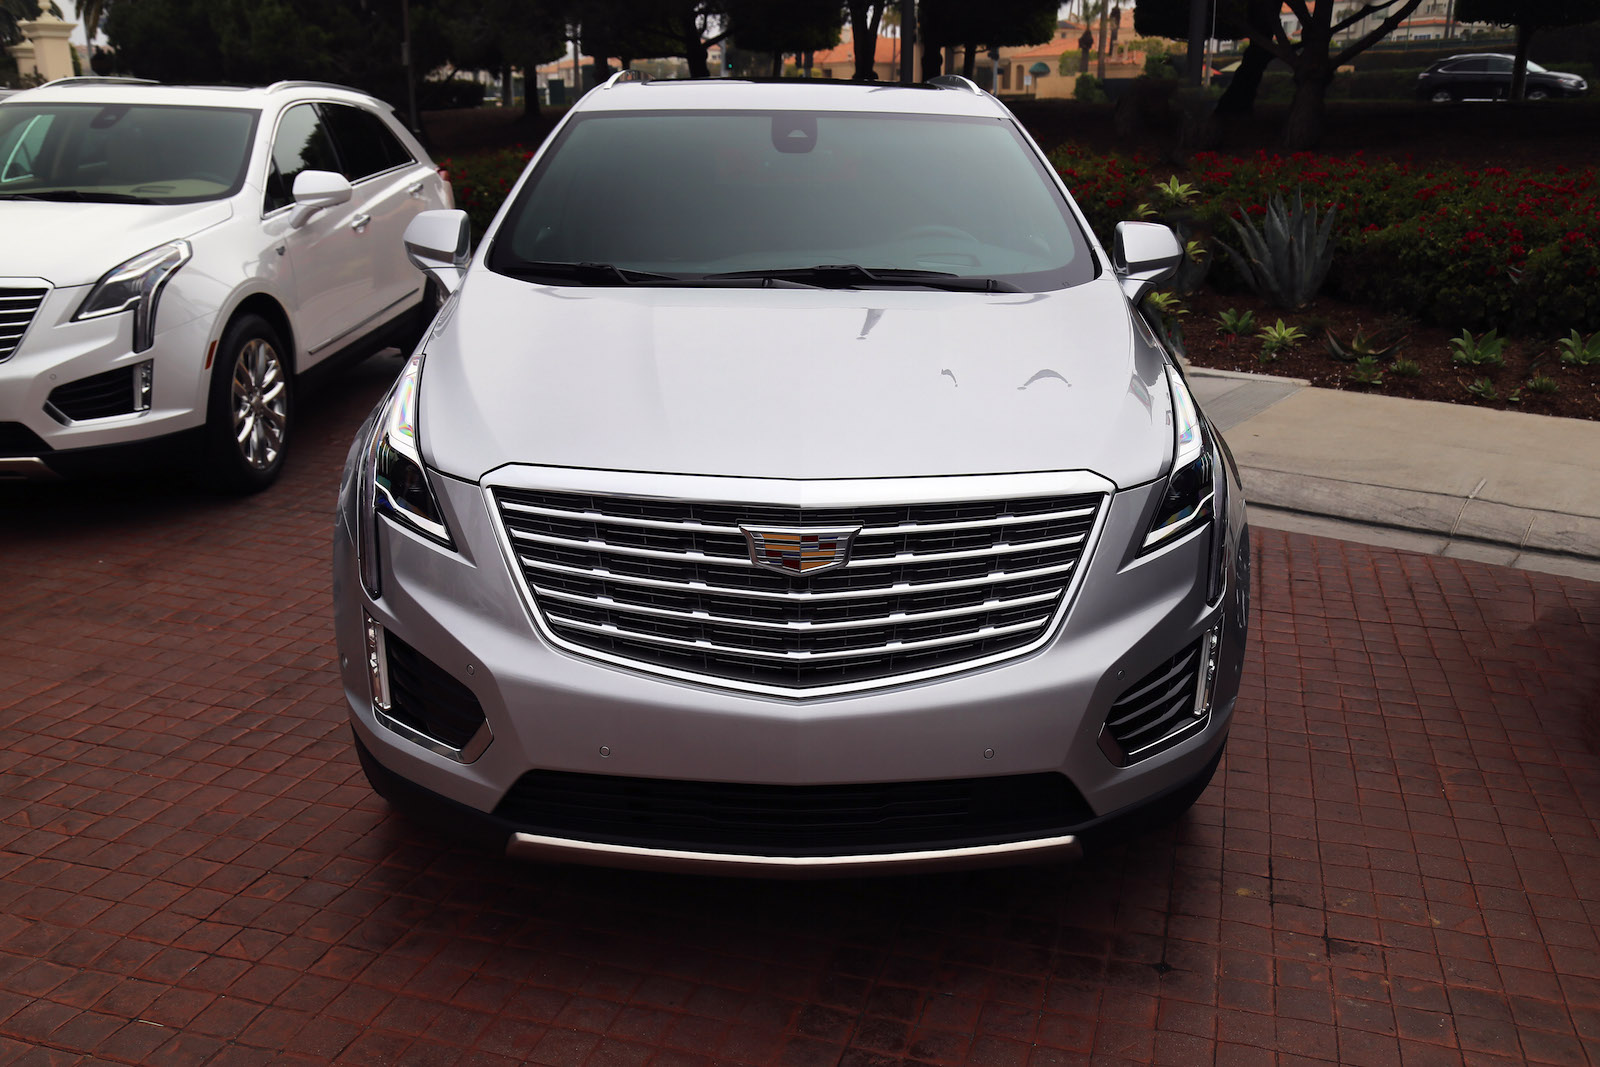 Cadillac Ats Coupe >> First Drive: 2017 Cadillac XT5 | Canadian Auto Review